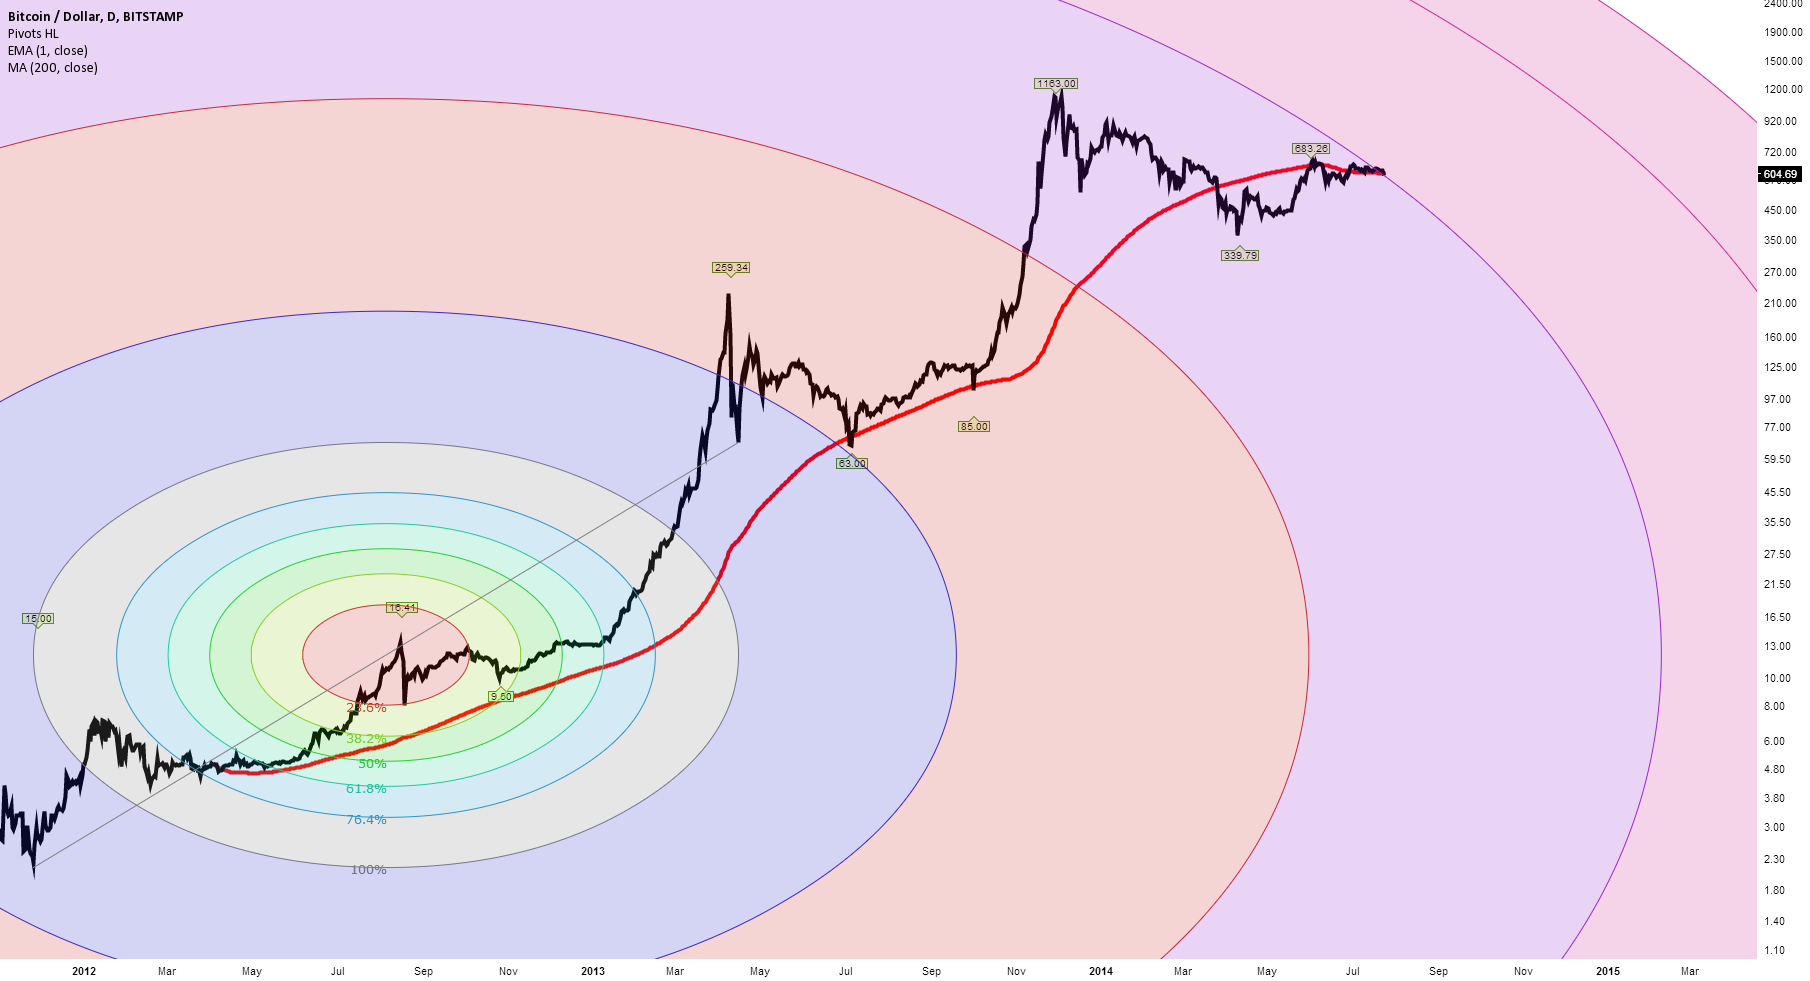 Best Bitcoin Price Chart - 2012 to 2014